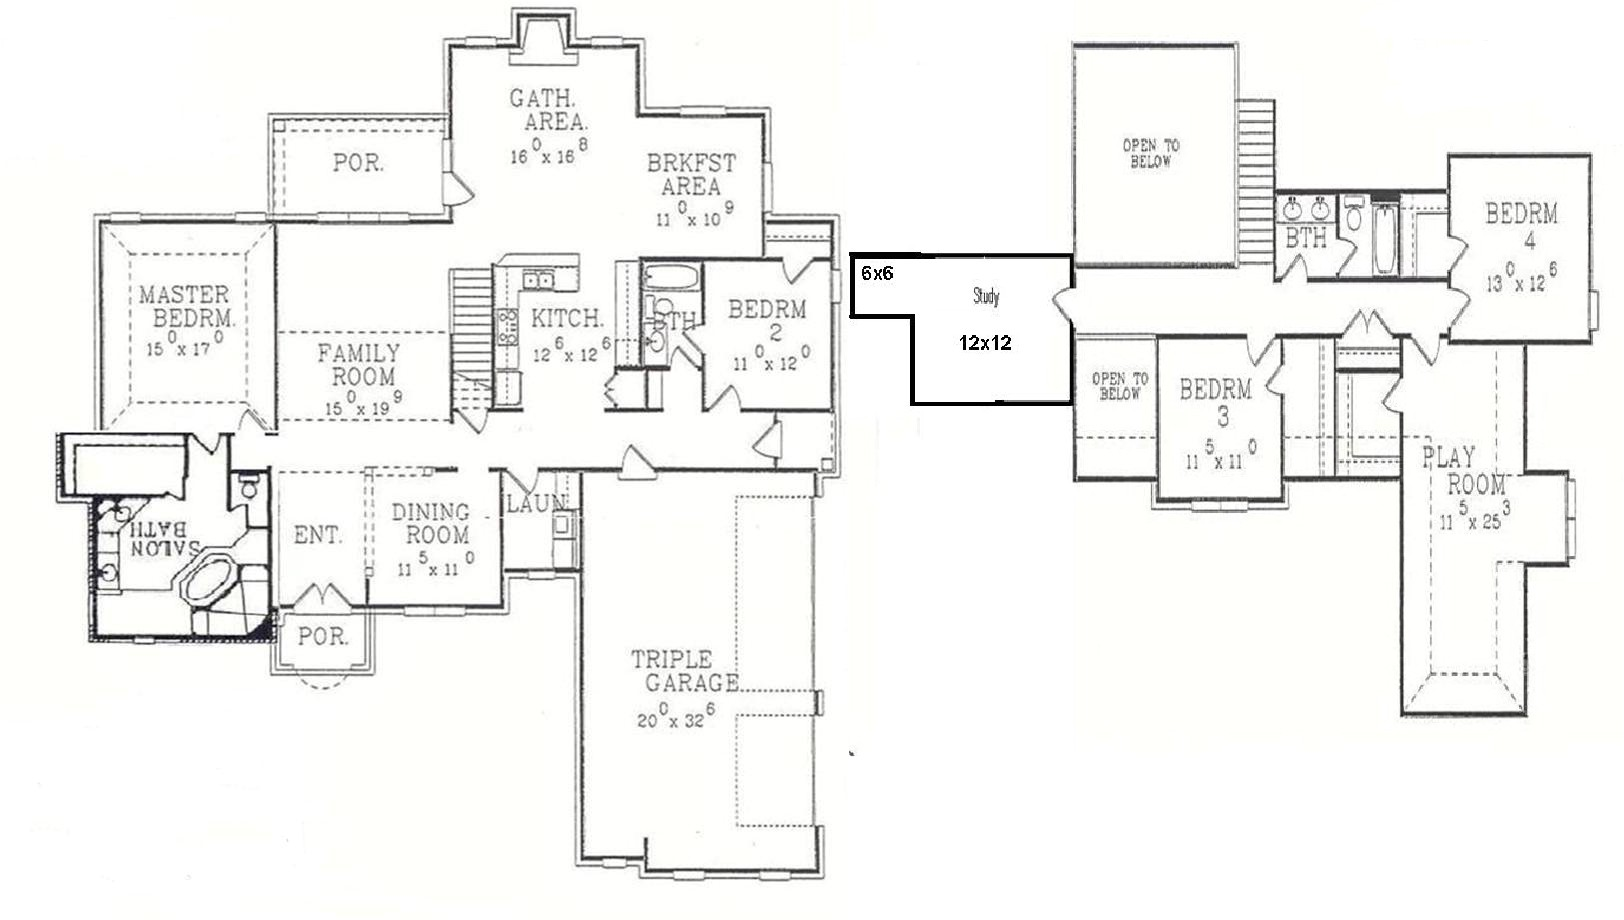 2000 oakwood mobile home floor plan